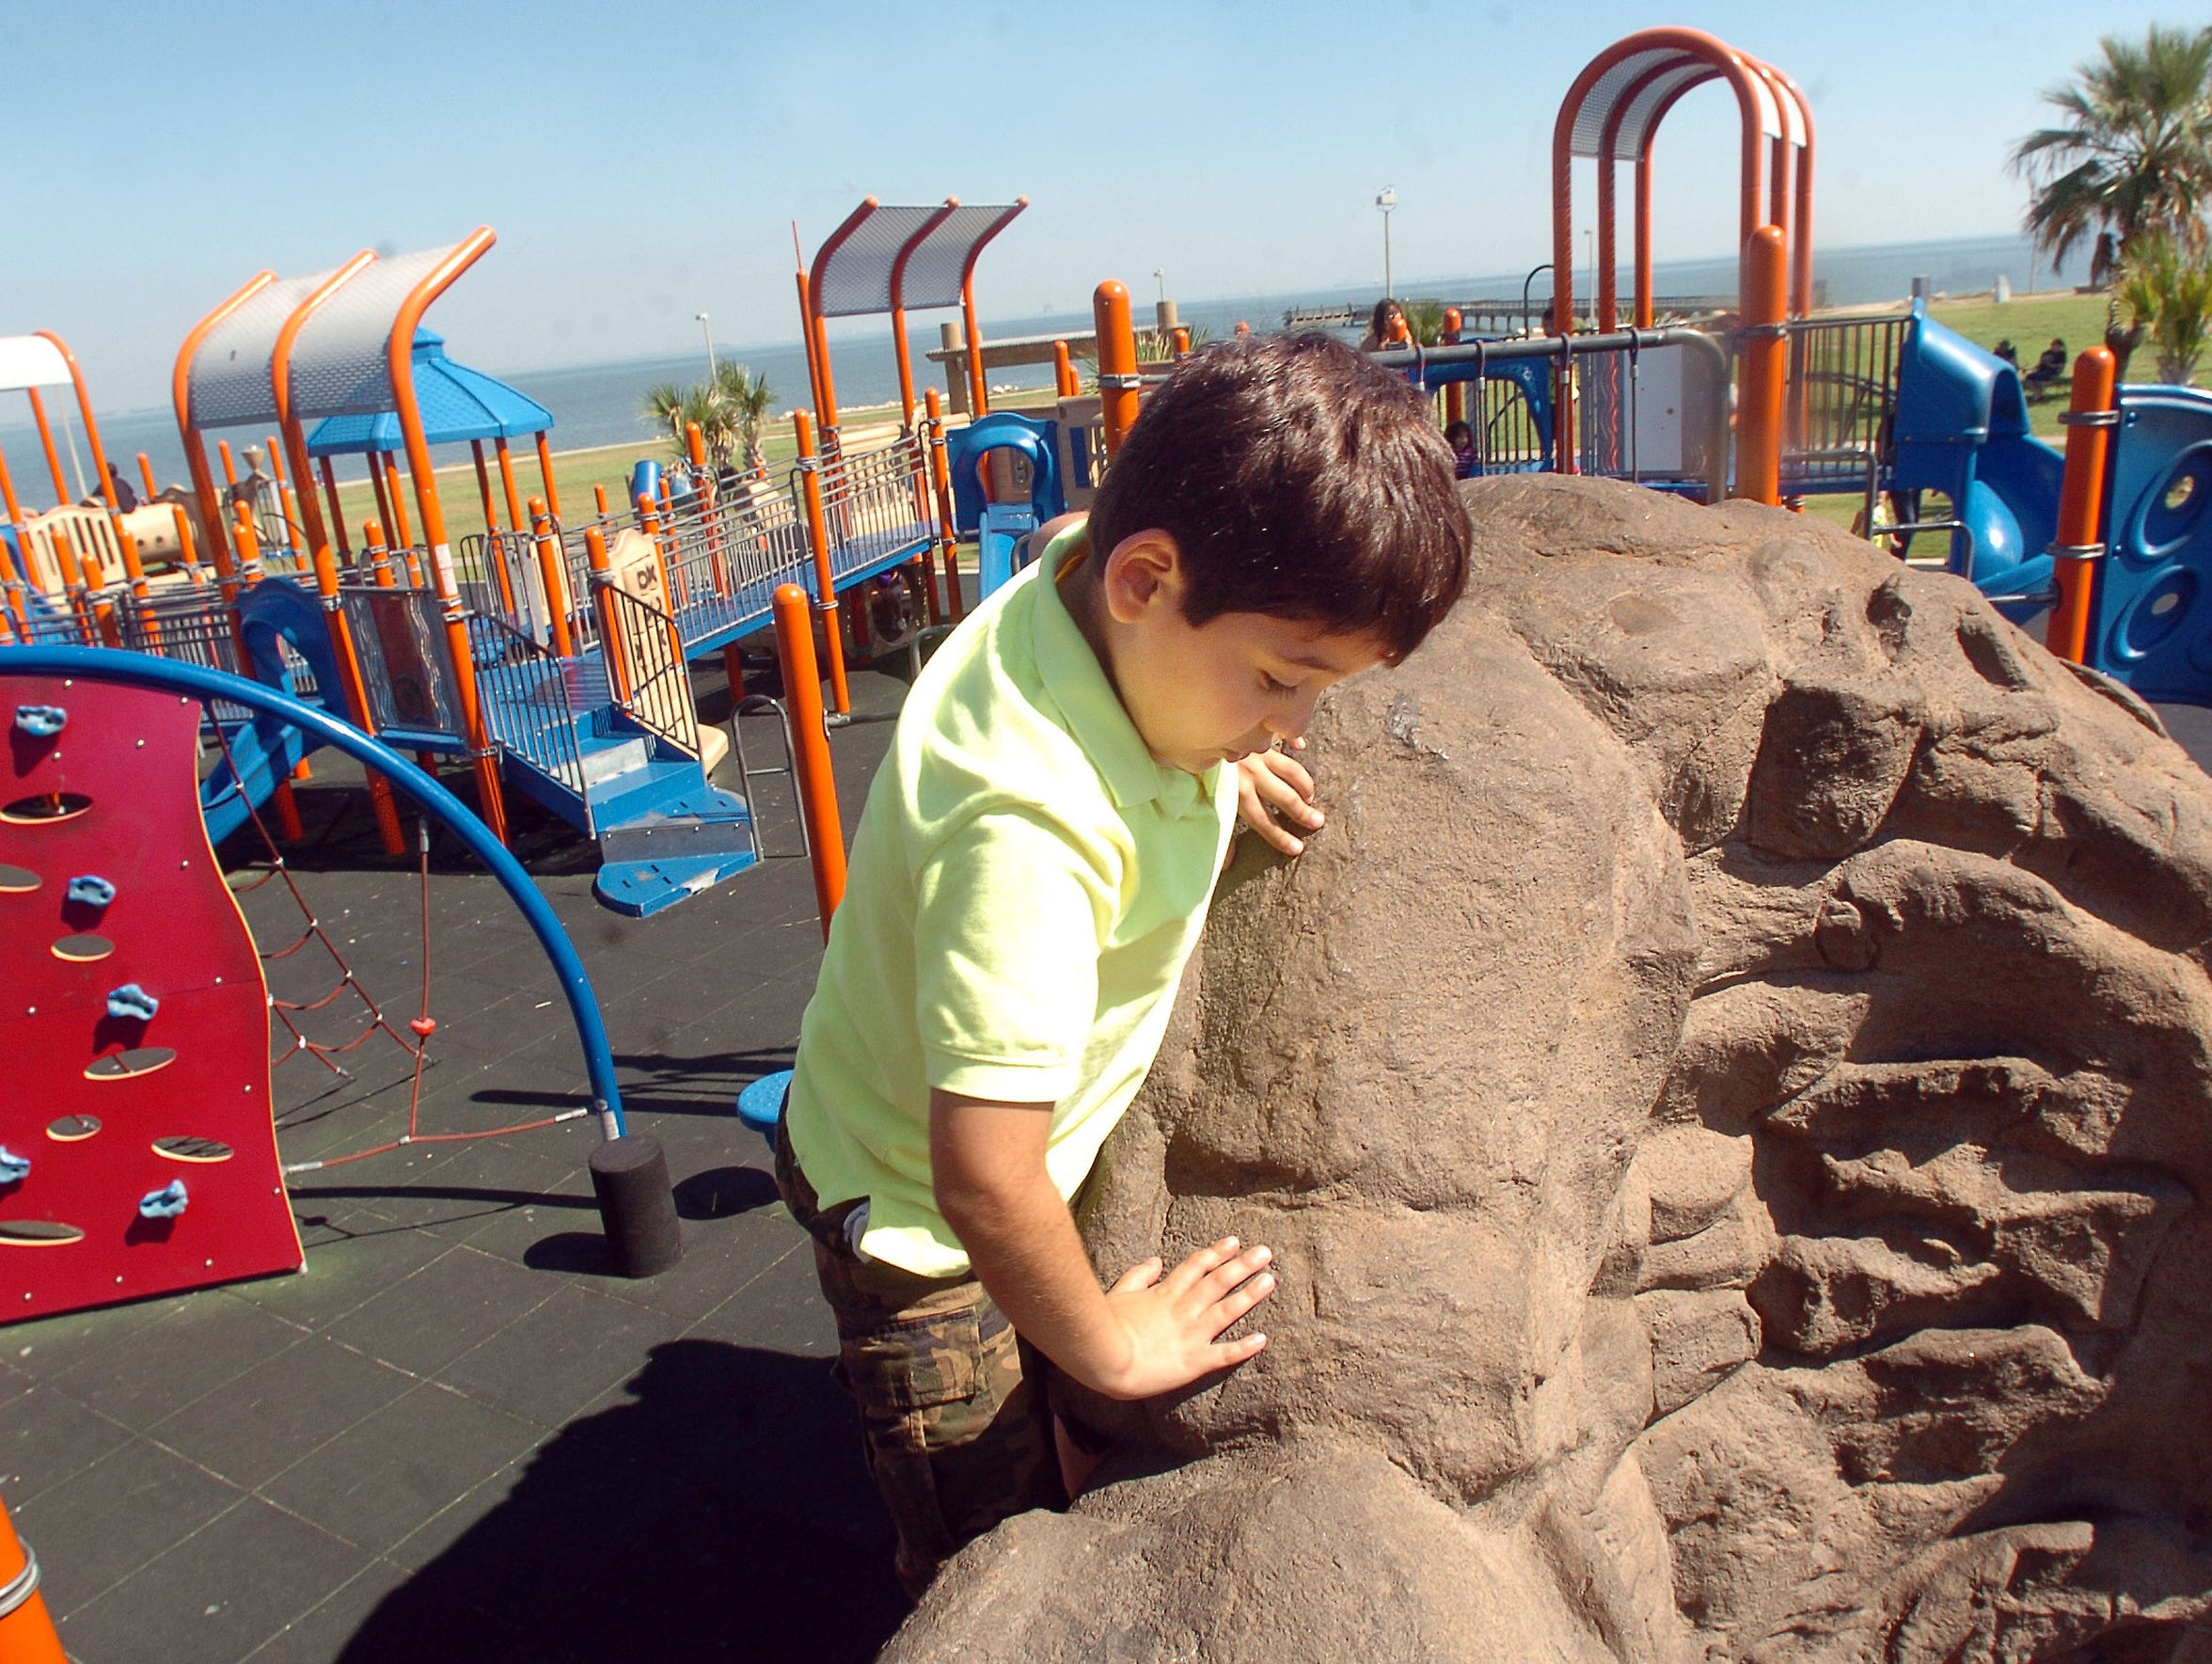 Andres Reyna, 8, climbs a rock-wall at Kids Place in